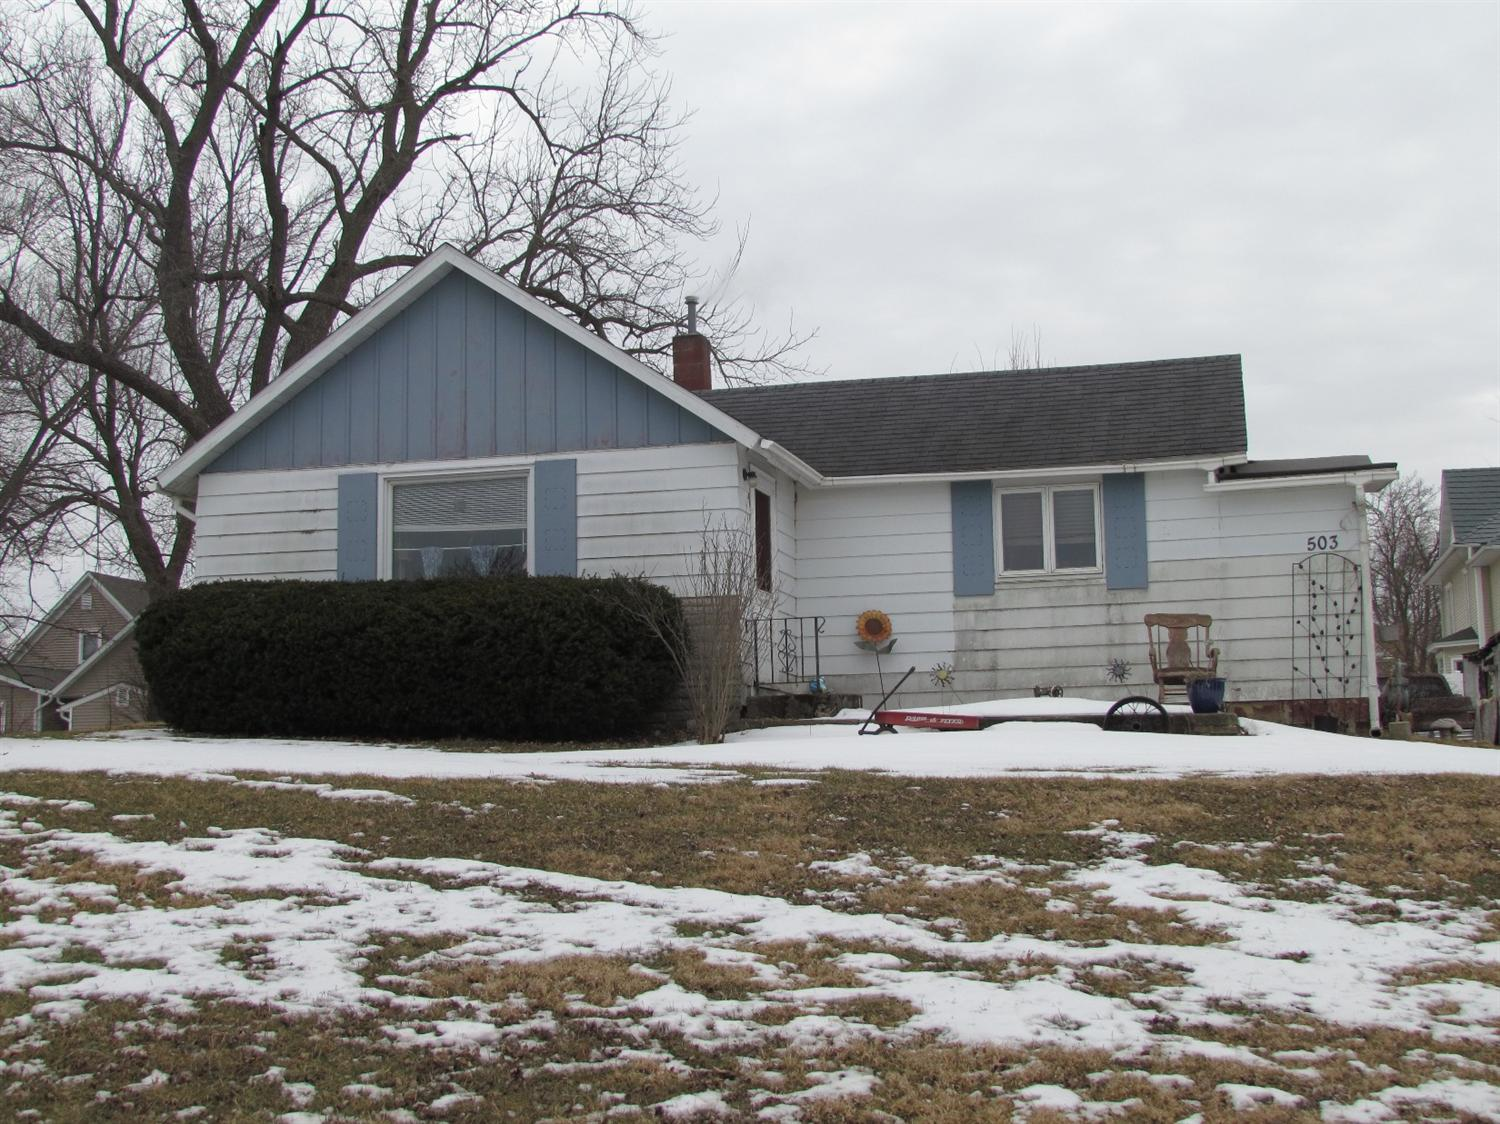 Photo of 503 West Des Moines Street  Brooklyn  IA